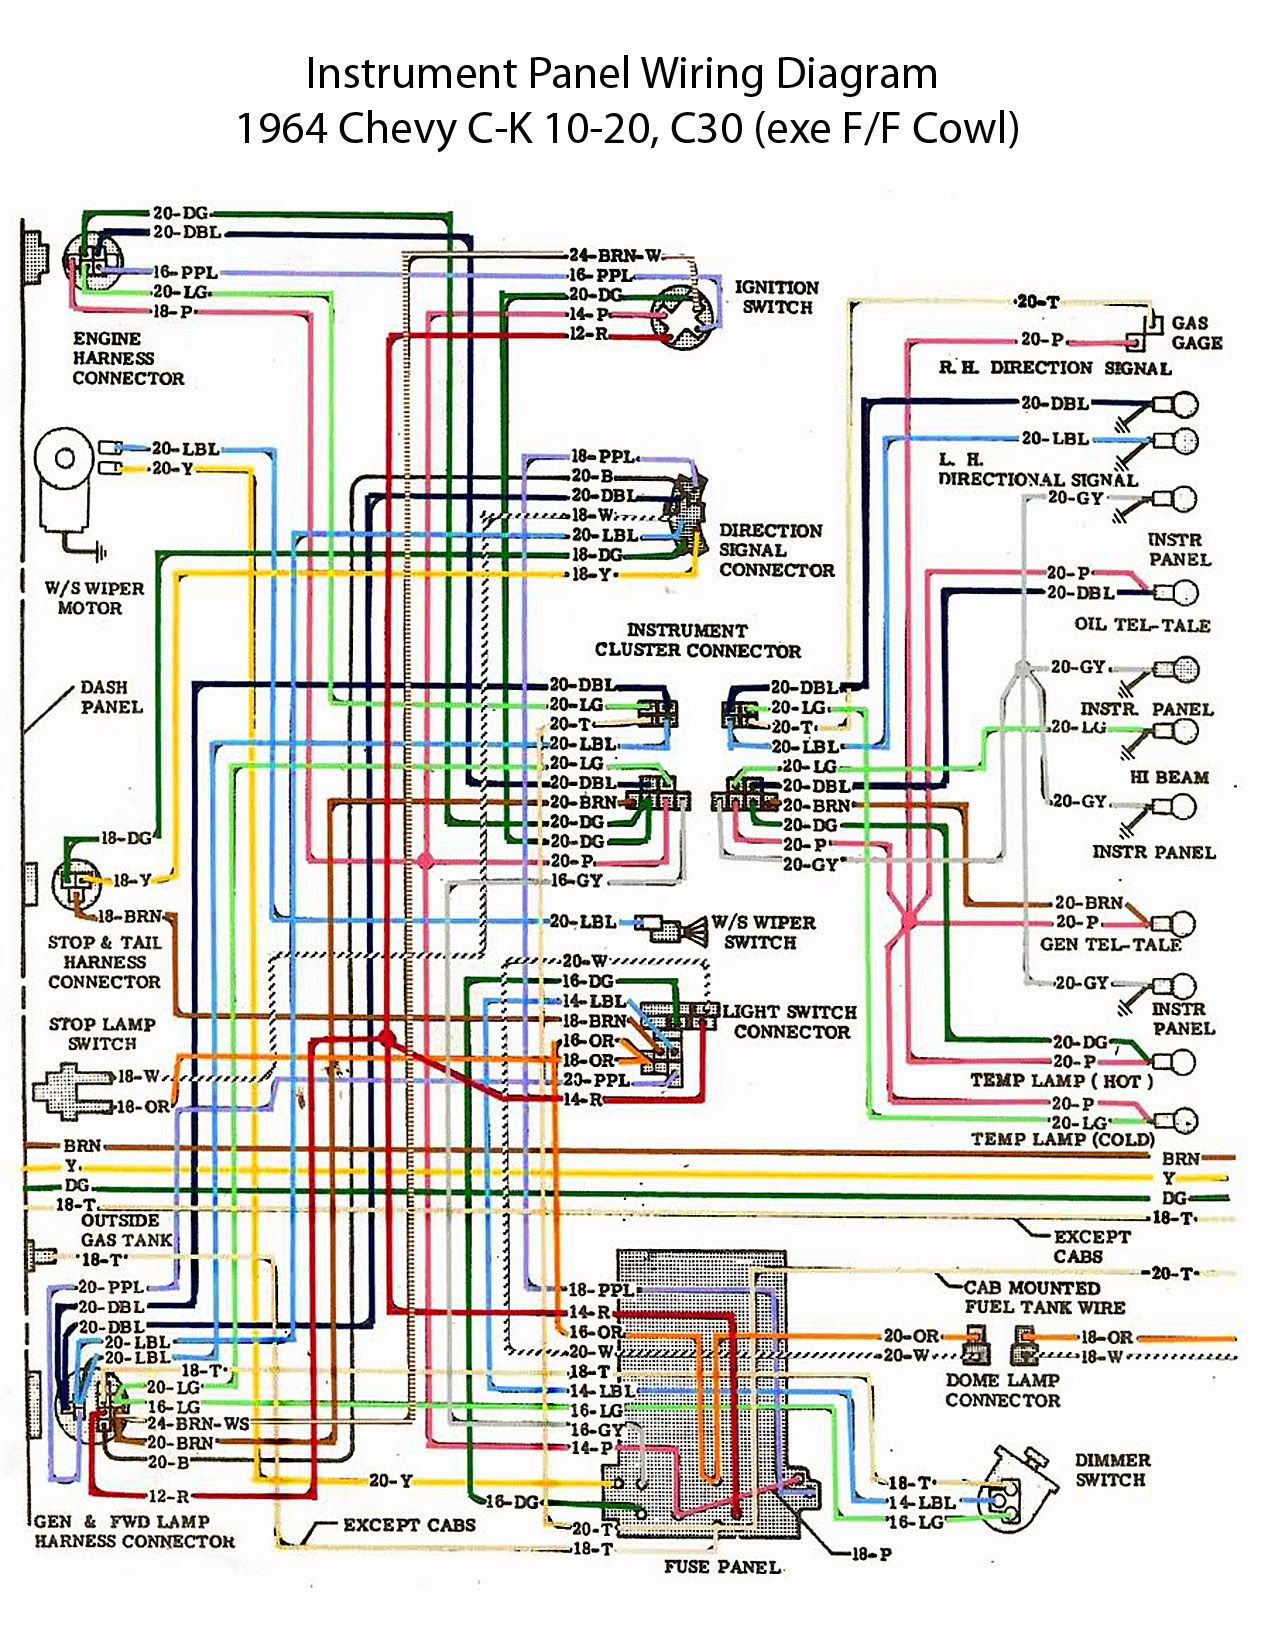 circuit diagram of yo bike wiring library rh 1 bloxhuette de 2wire gm alternator wiring diagram delco alternator wiring diagram [ 1275 x 1650 Pixel ]